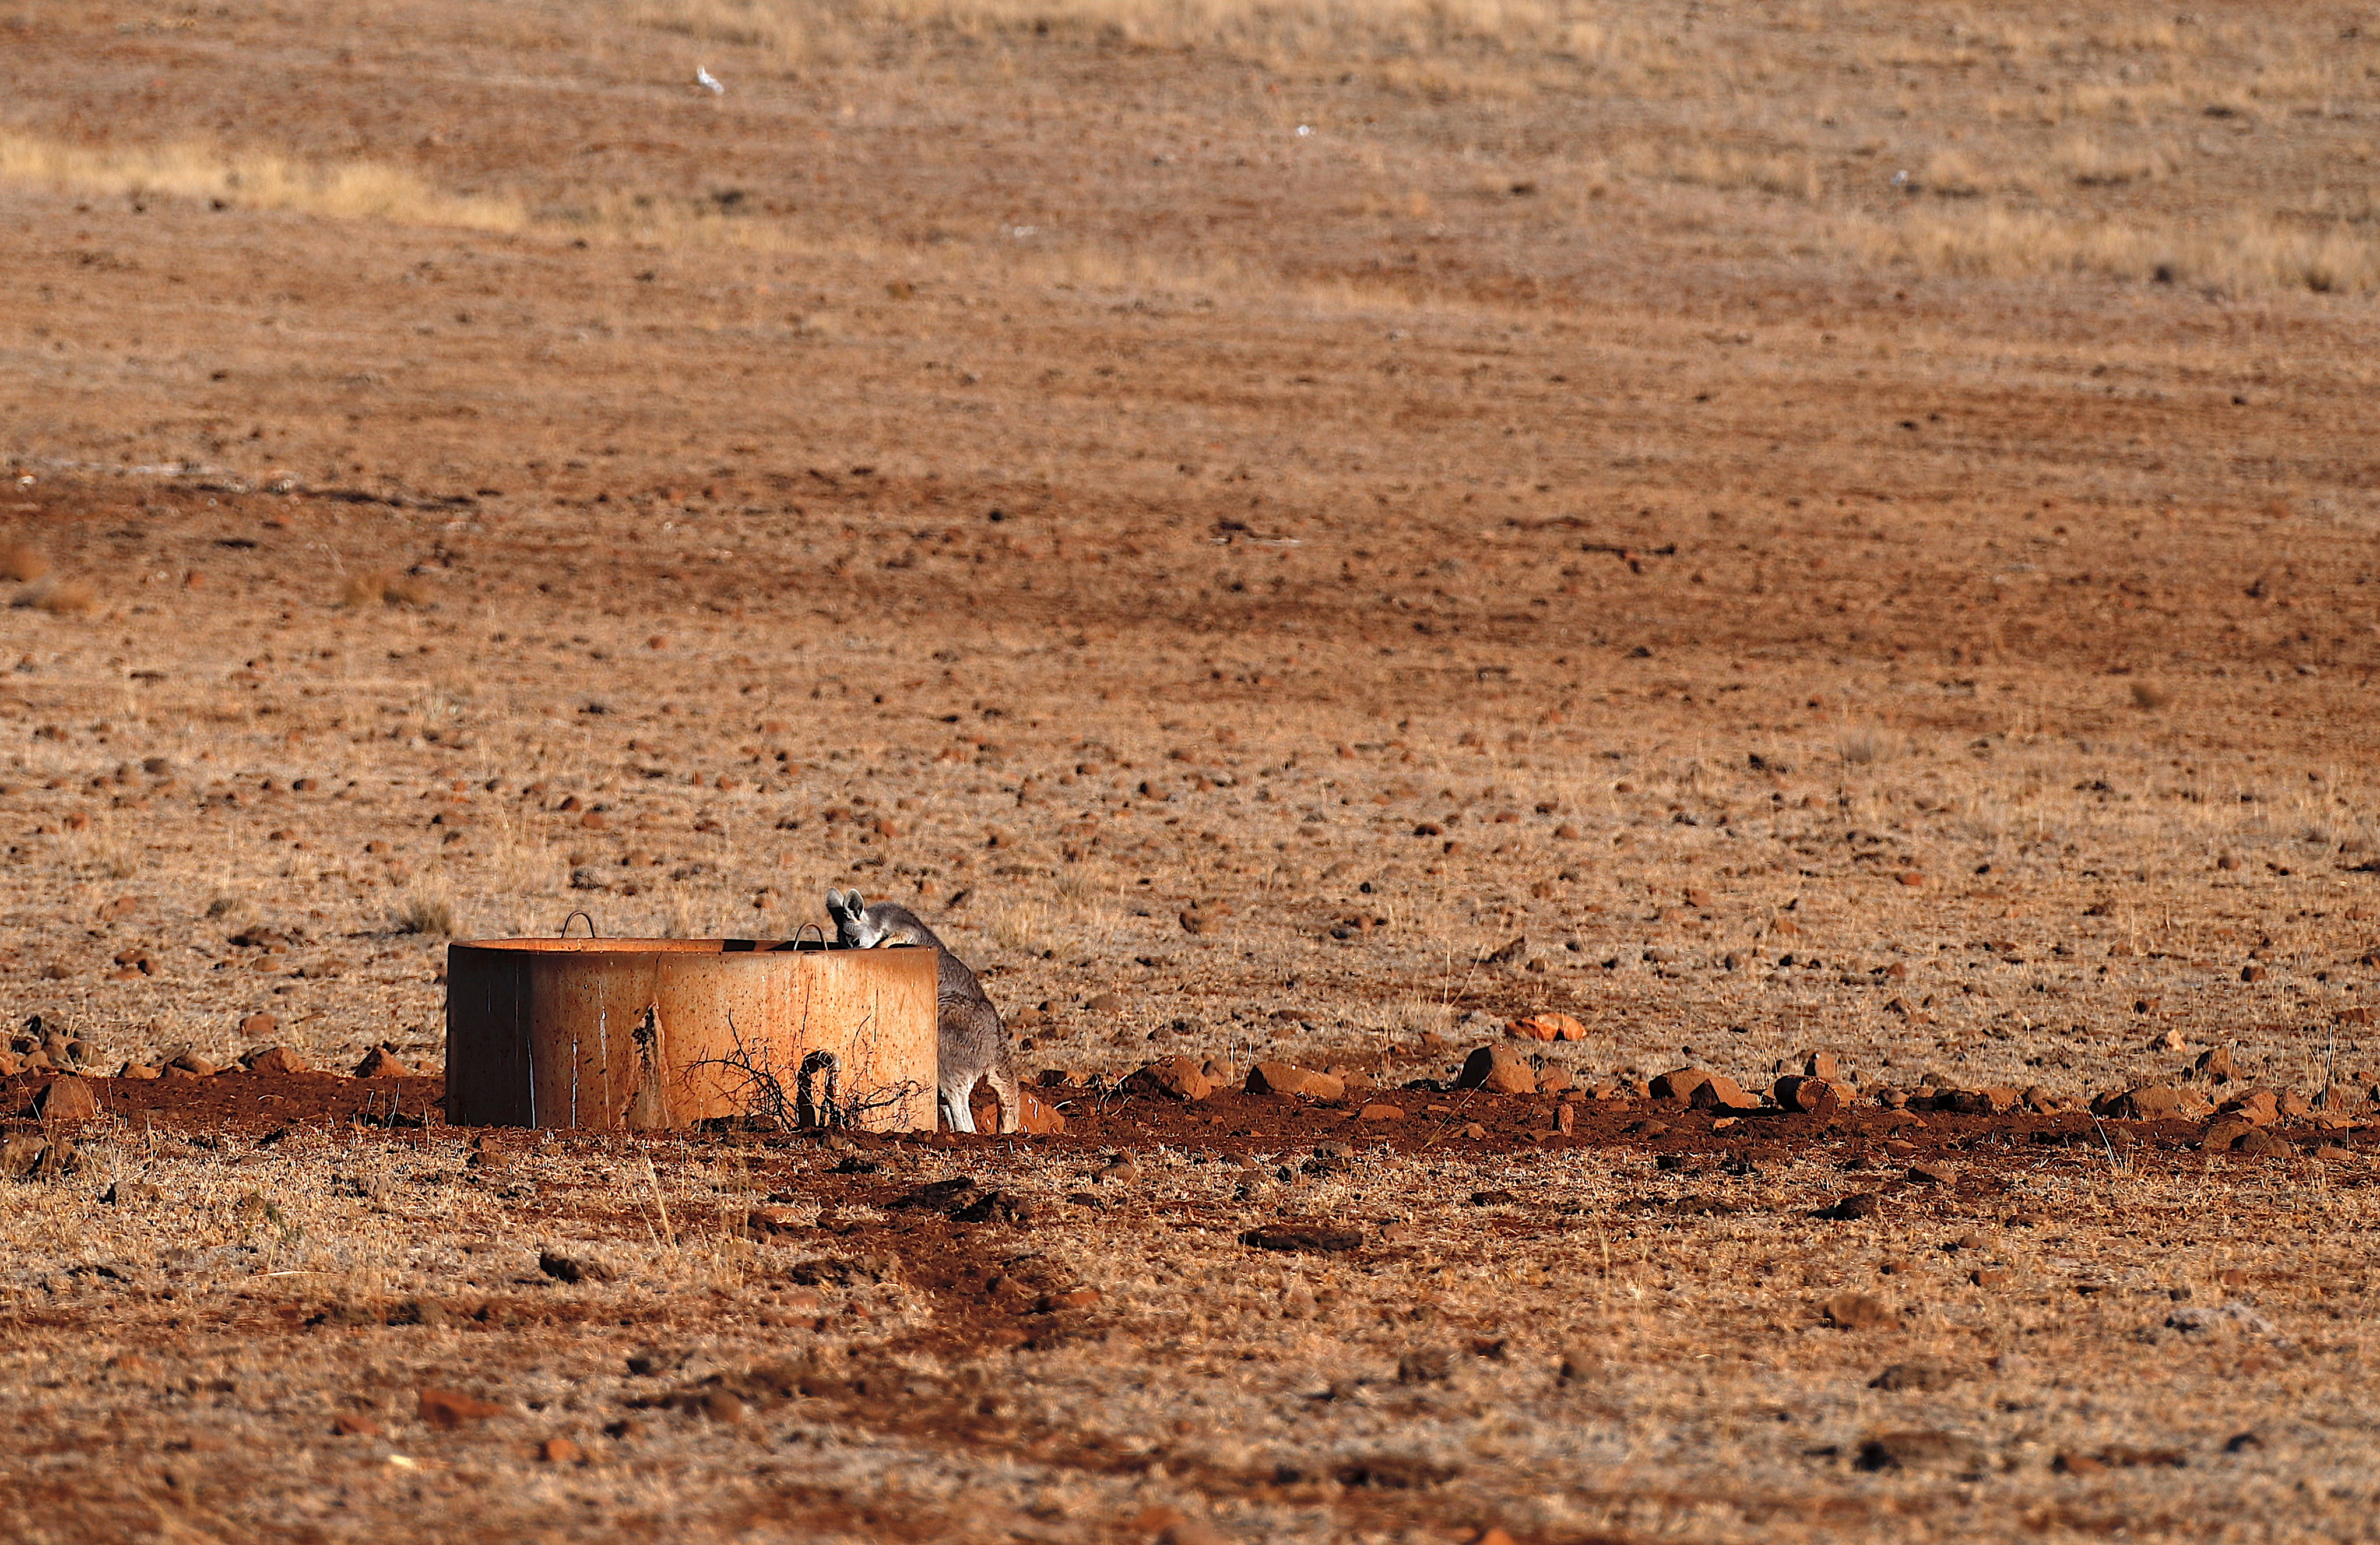 A kangaroo drinks from a water tank located in a drought-affected paddock on farmer Ash Whitney's property, located west of the town of Gunnedah in northwestern New South Wales, Australia, June 3, 2018.